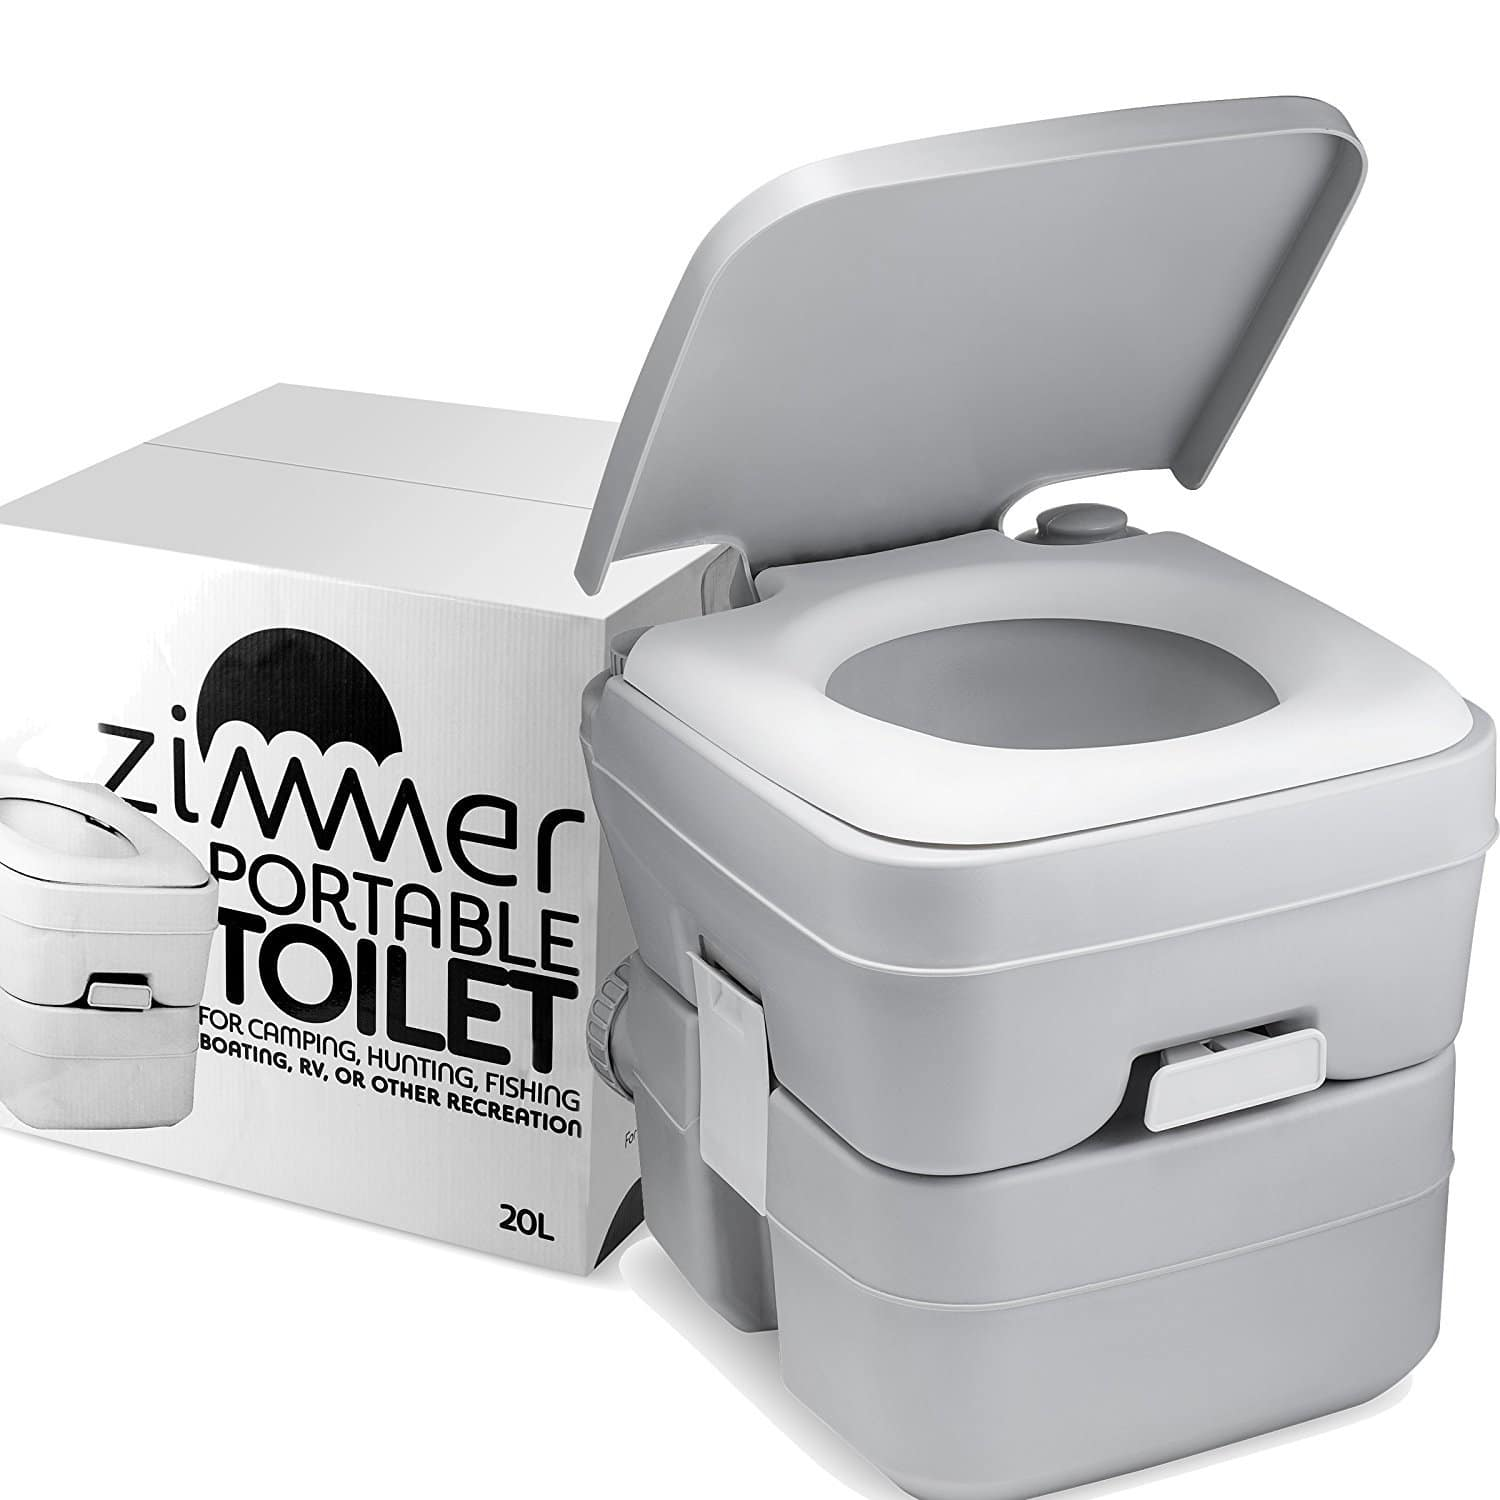 Zimmer Porta Potty – Best for Budget